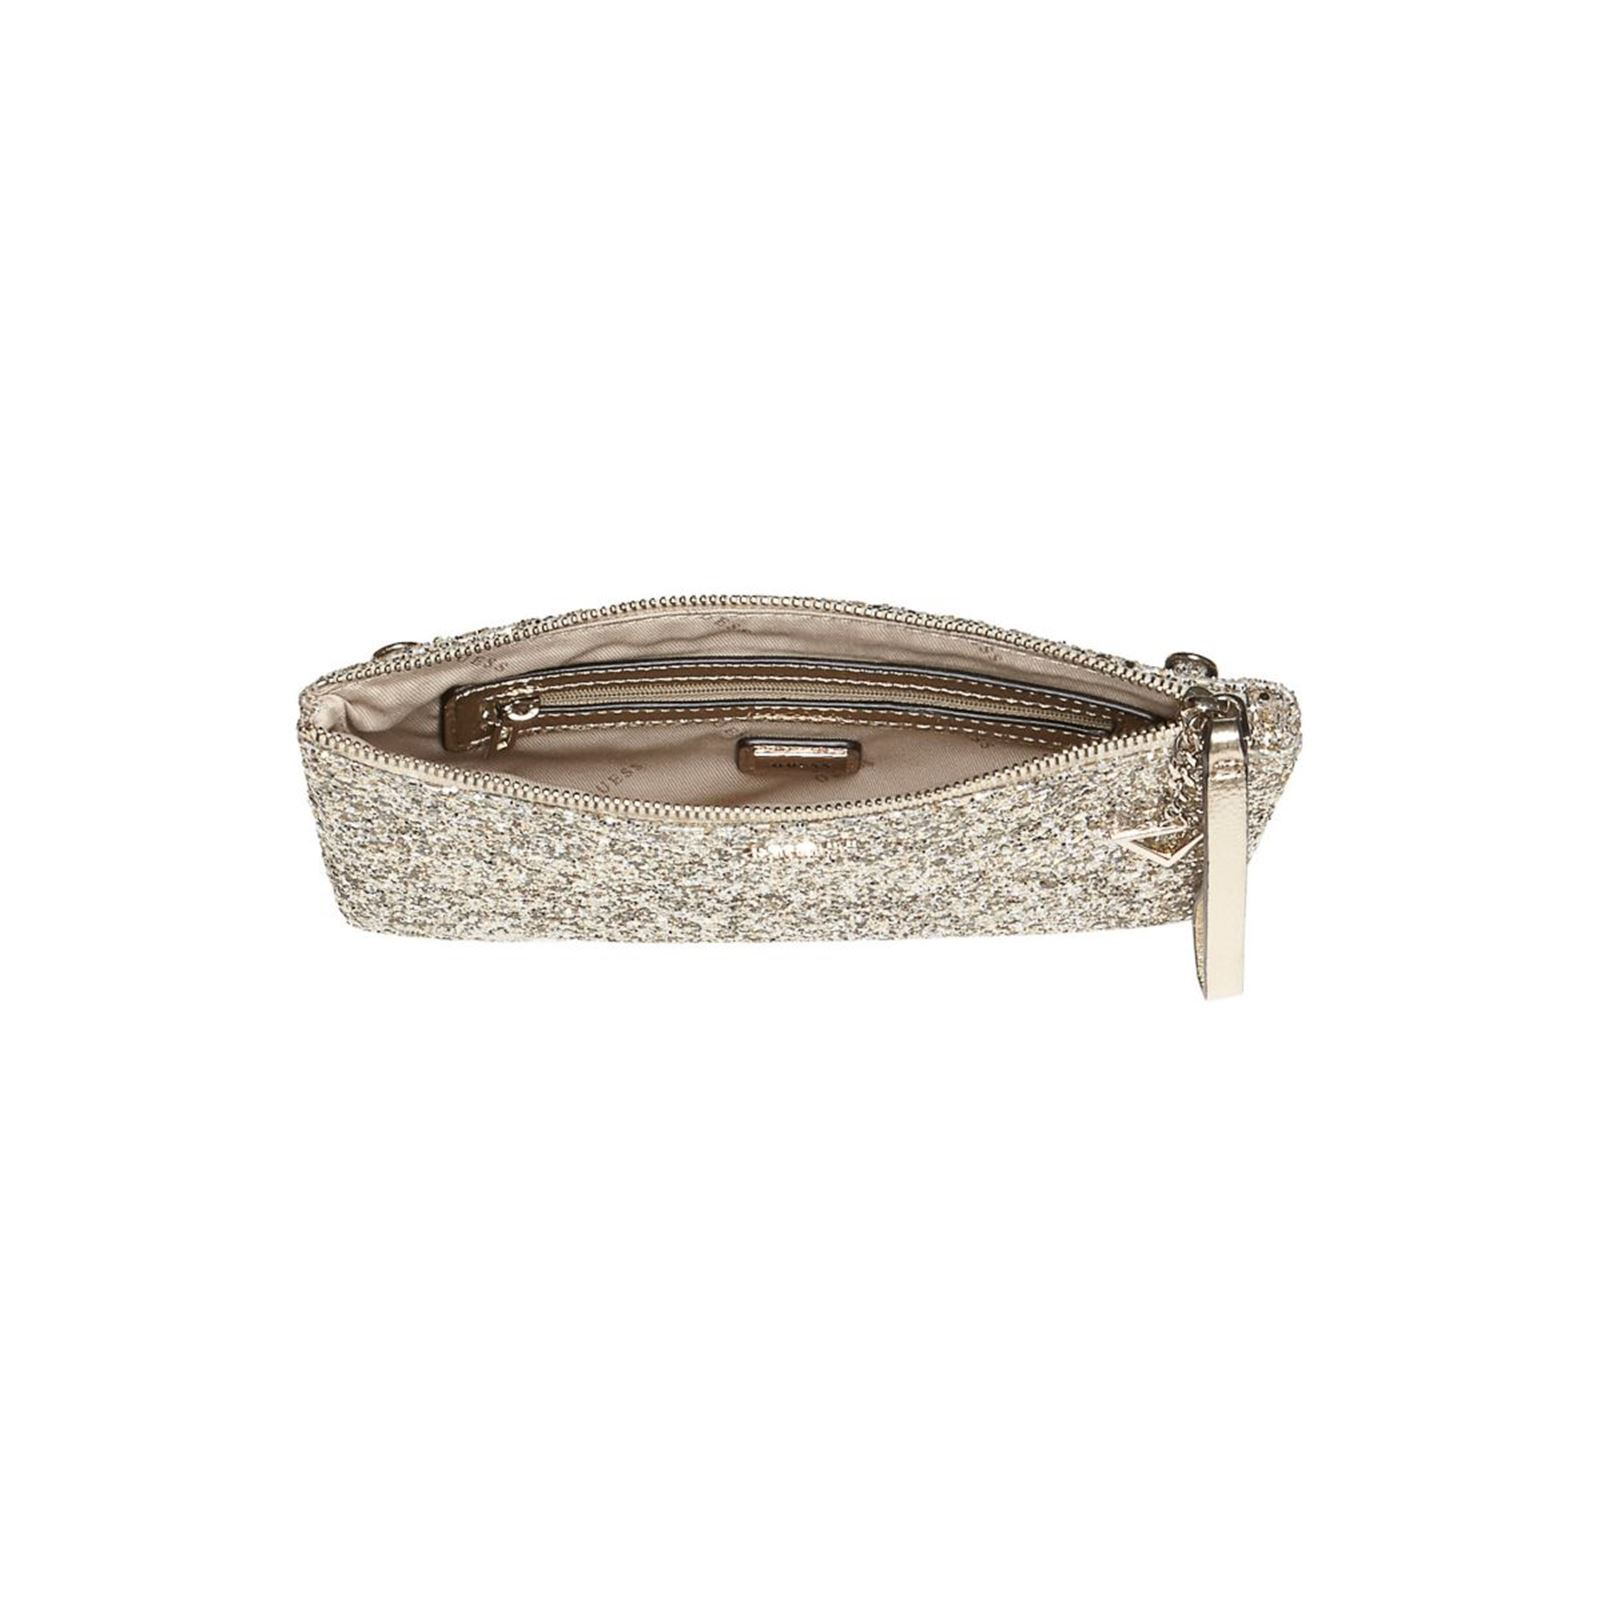 1adb3e0182 Guess Ever after - Sac pochette - or | BrandAlley